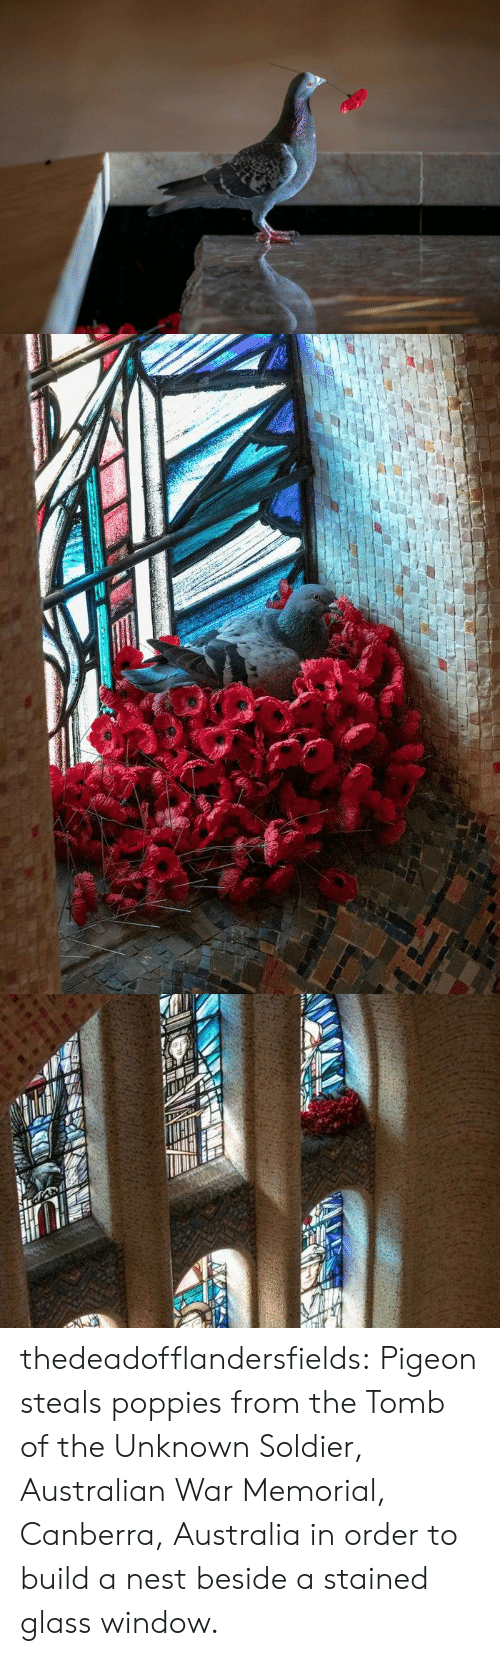 Memorial: thedeadofflandersfields:  Pigeon steals poppies from the Tomb of the Unknown Soldier, Australian War Memorial, Canberra, Australia in order to build a nest beside a stained glass window.